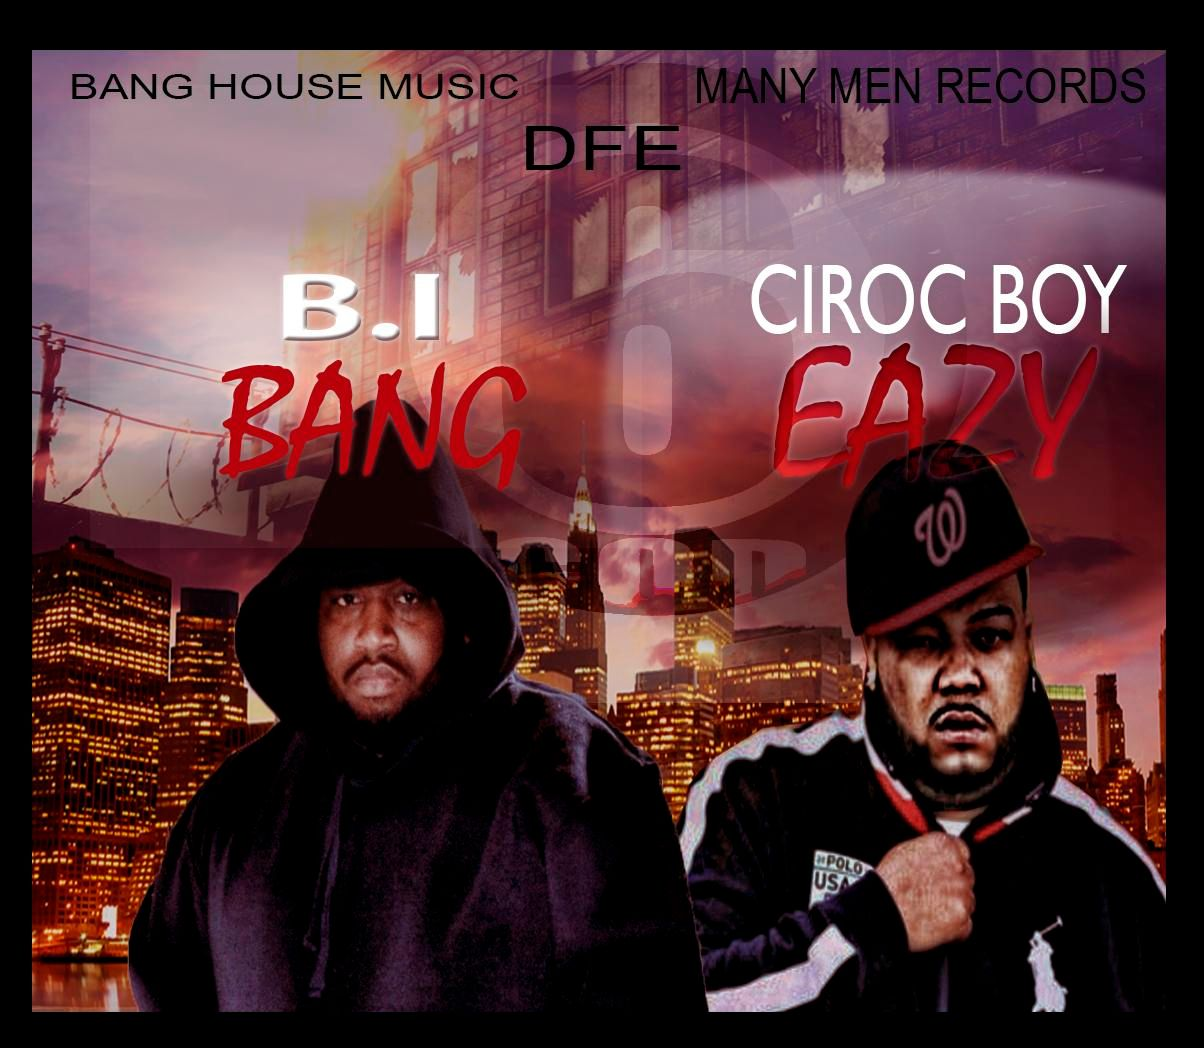 B i bang 6 god freestyle ft ciroc boy eazy allout for Banging house music